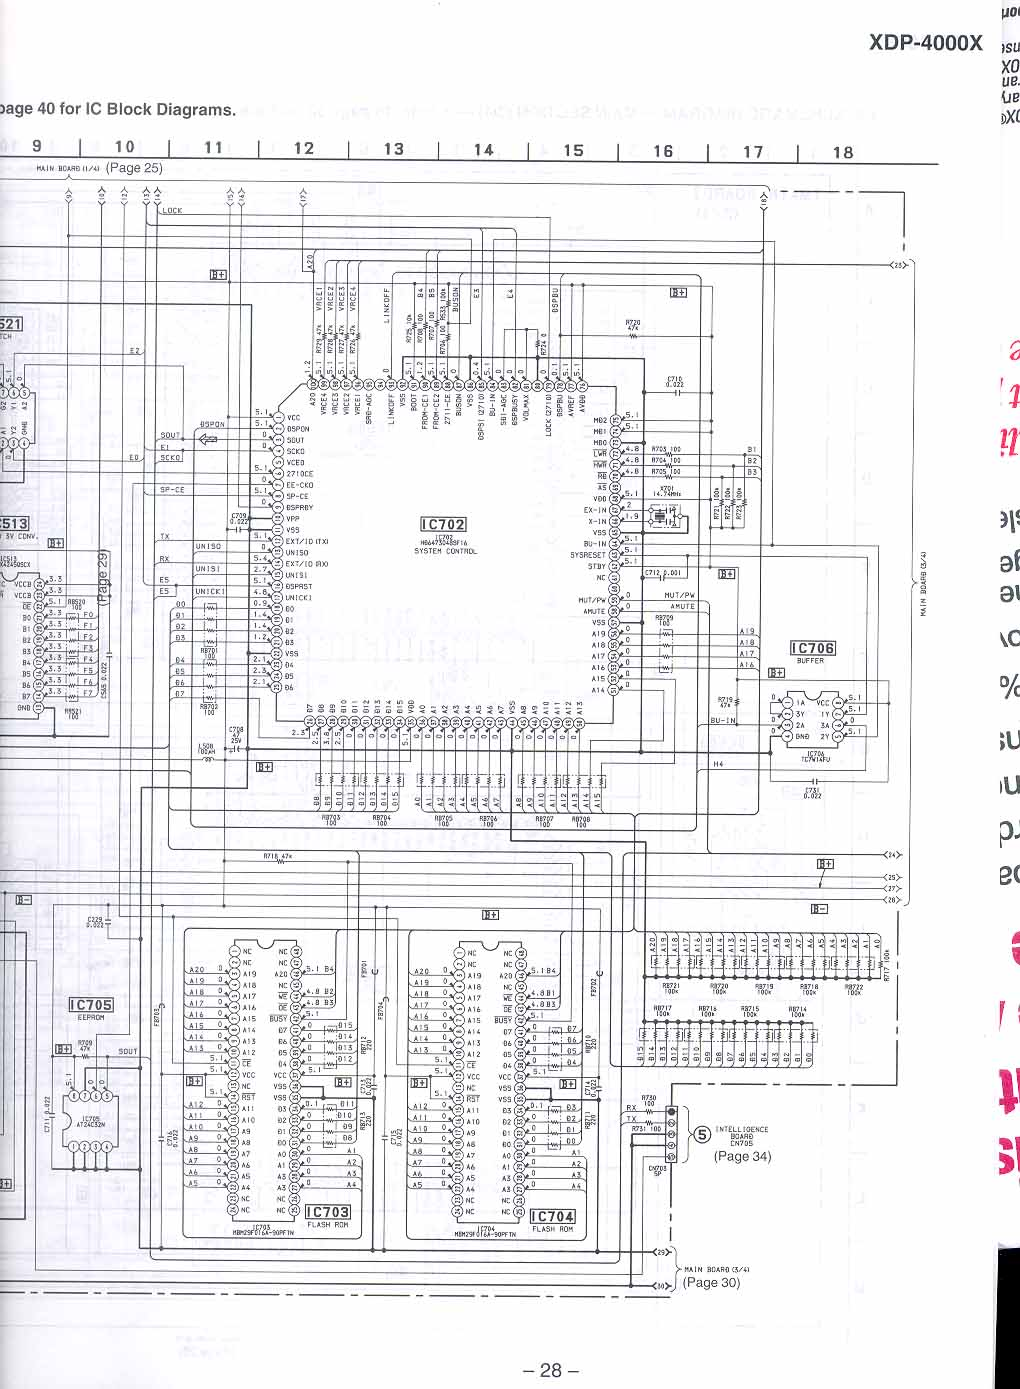 Rev1 Page28 4kcontrol control utility for the sony xdp 4000x digital sony cdx 4000x wiring diagram at crackthecode.co